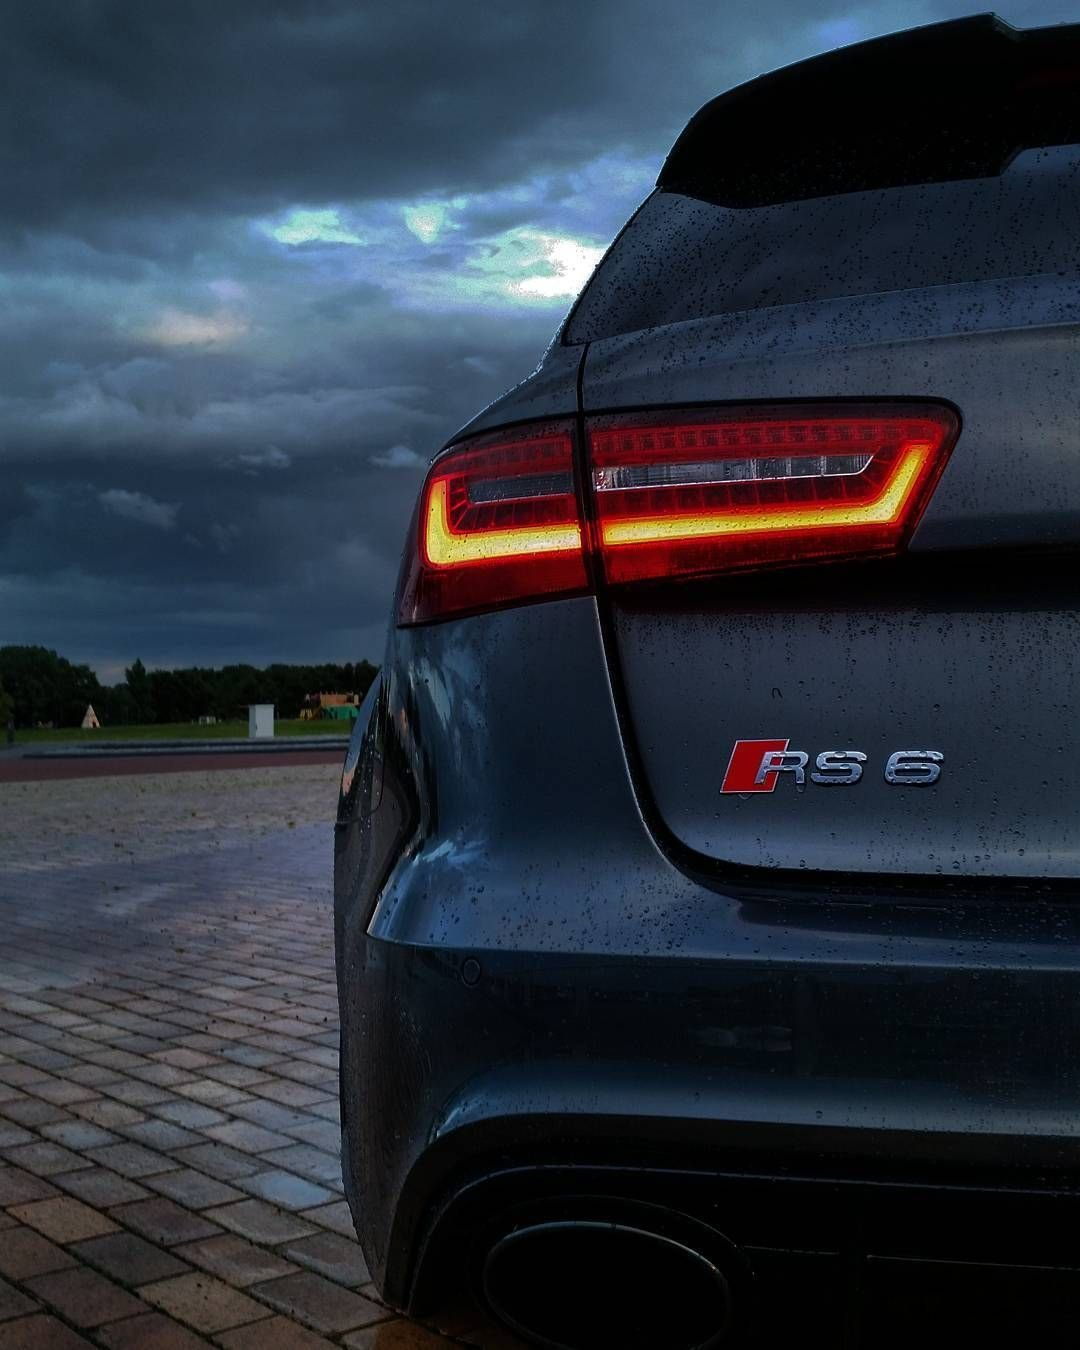 Latest Rs6 Iphone Background Iphone Backgrounds Autos Free Download